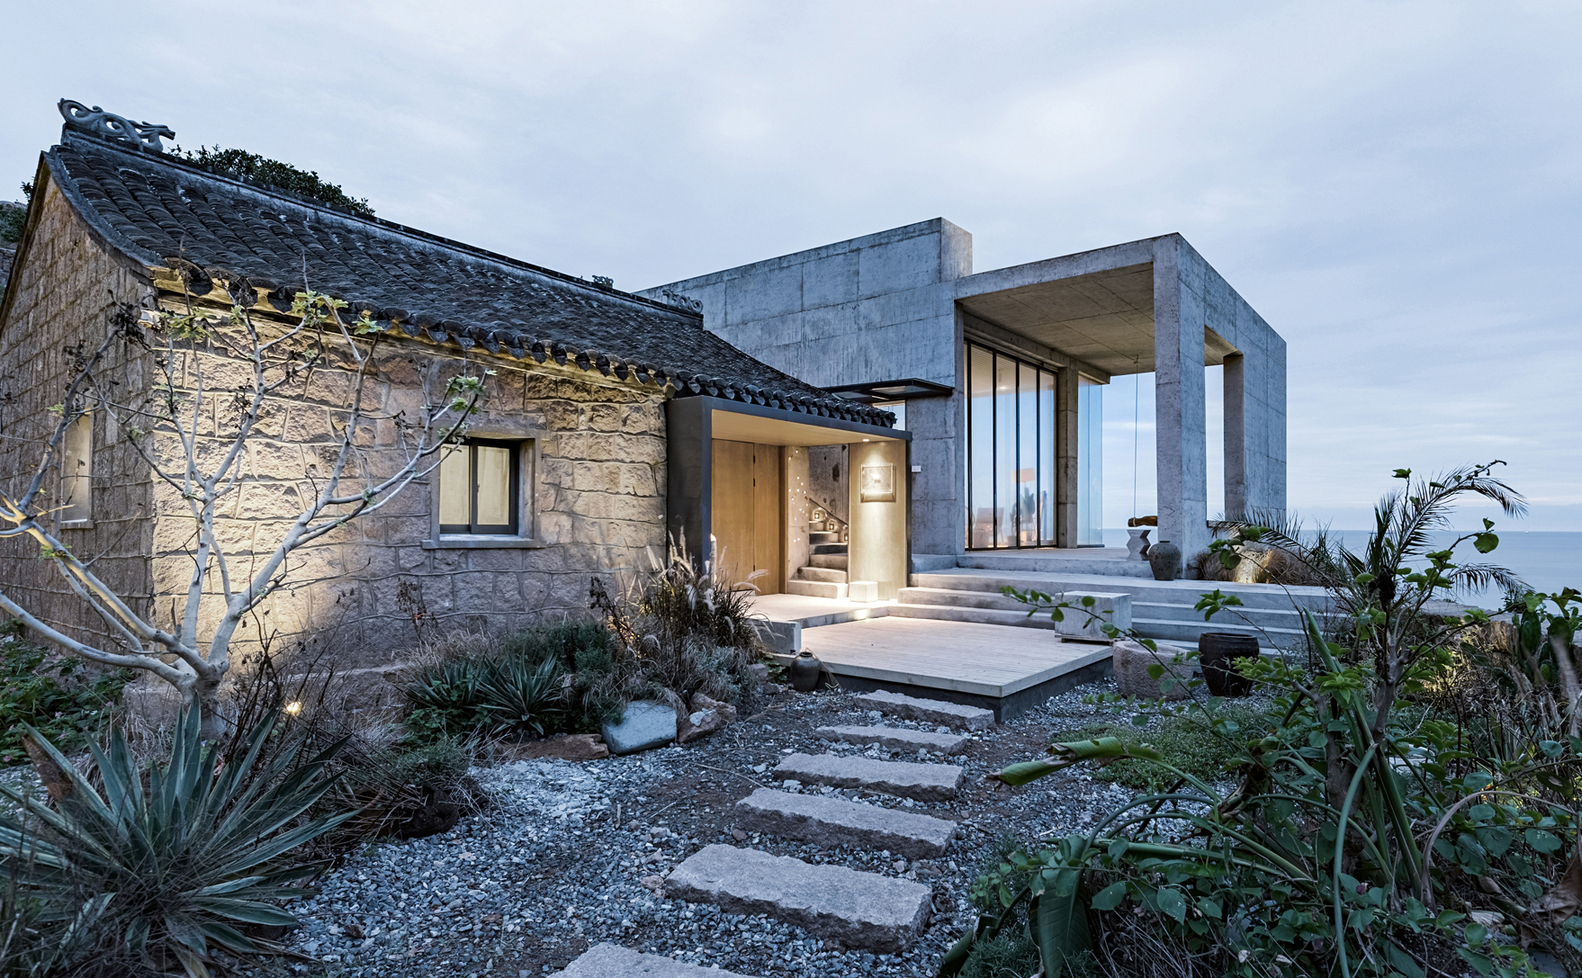 Rural house renovation in zhoushan jianping yang